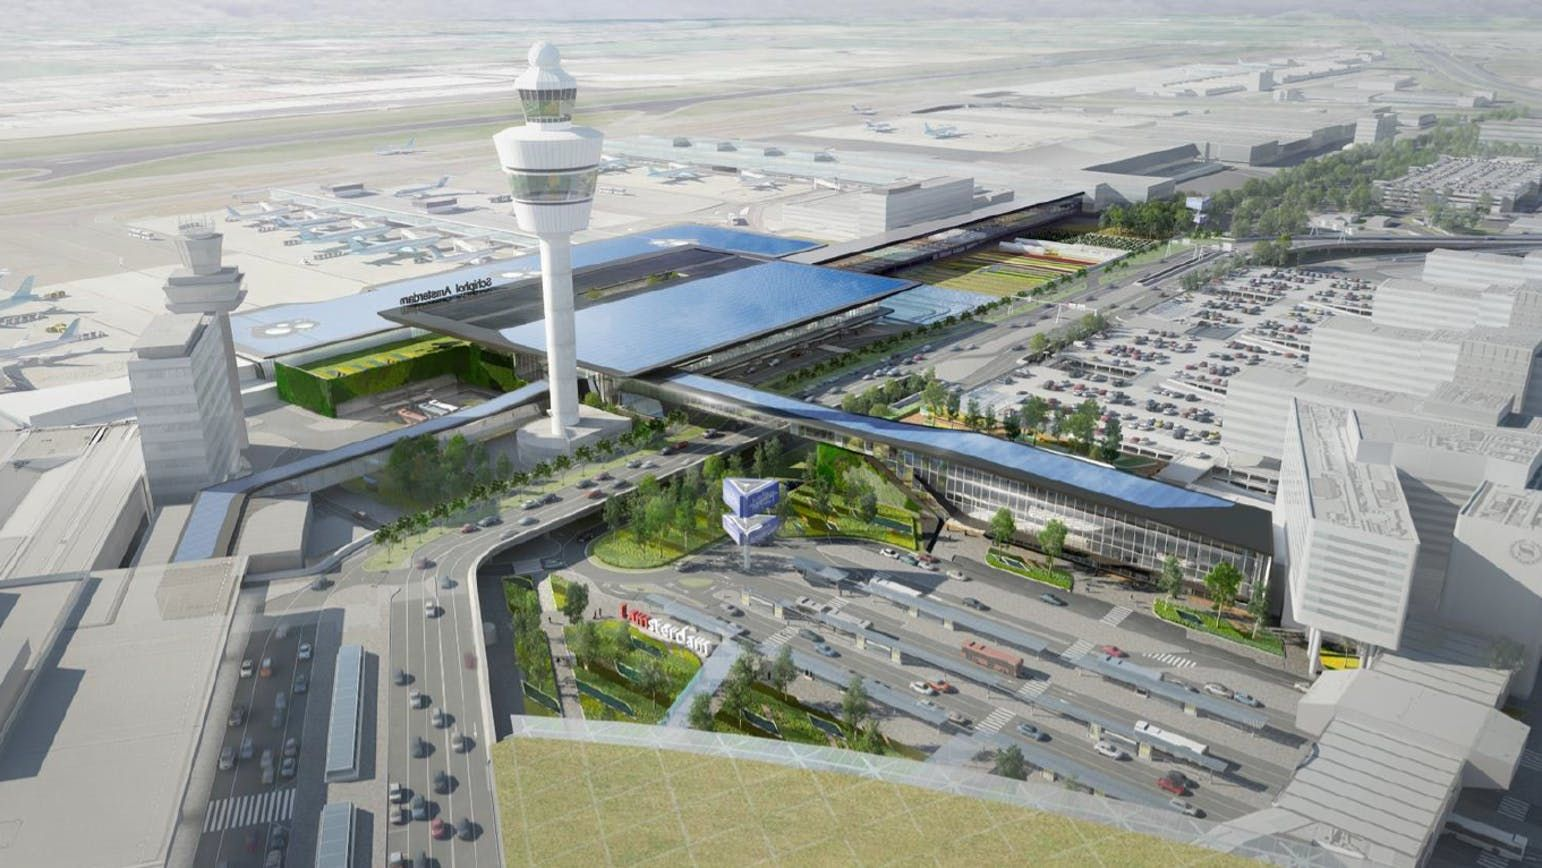 Schiphol airport expansion entrusted to Aecom 21